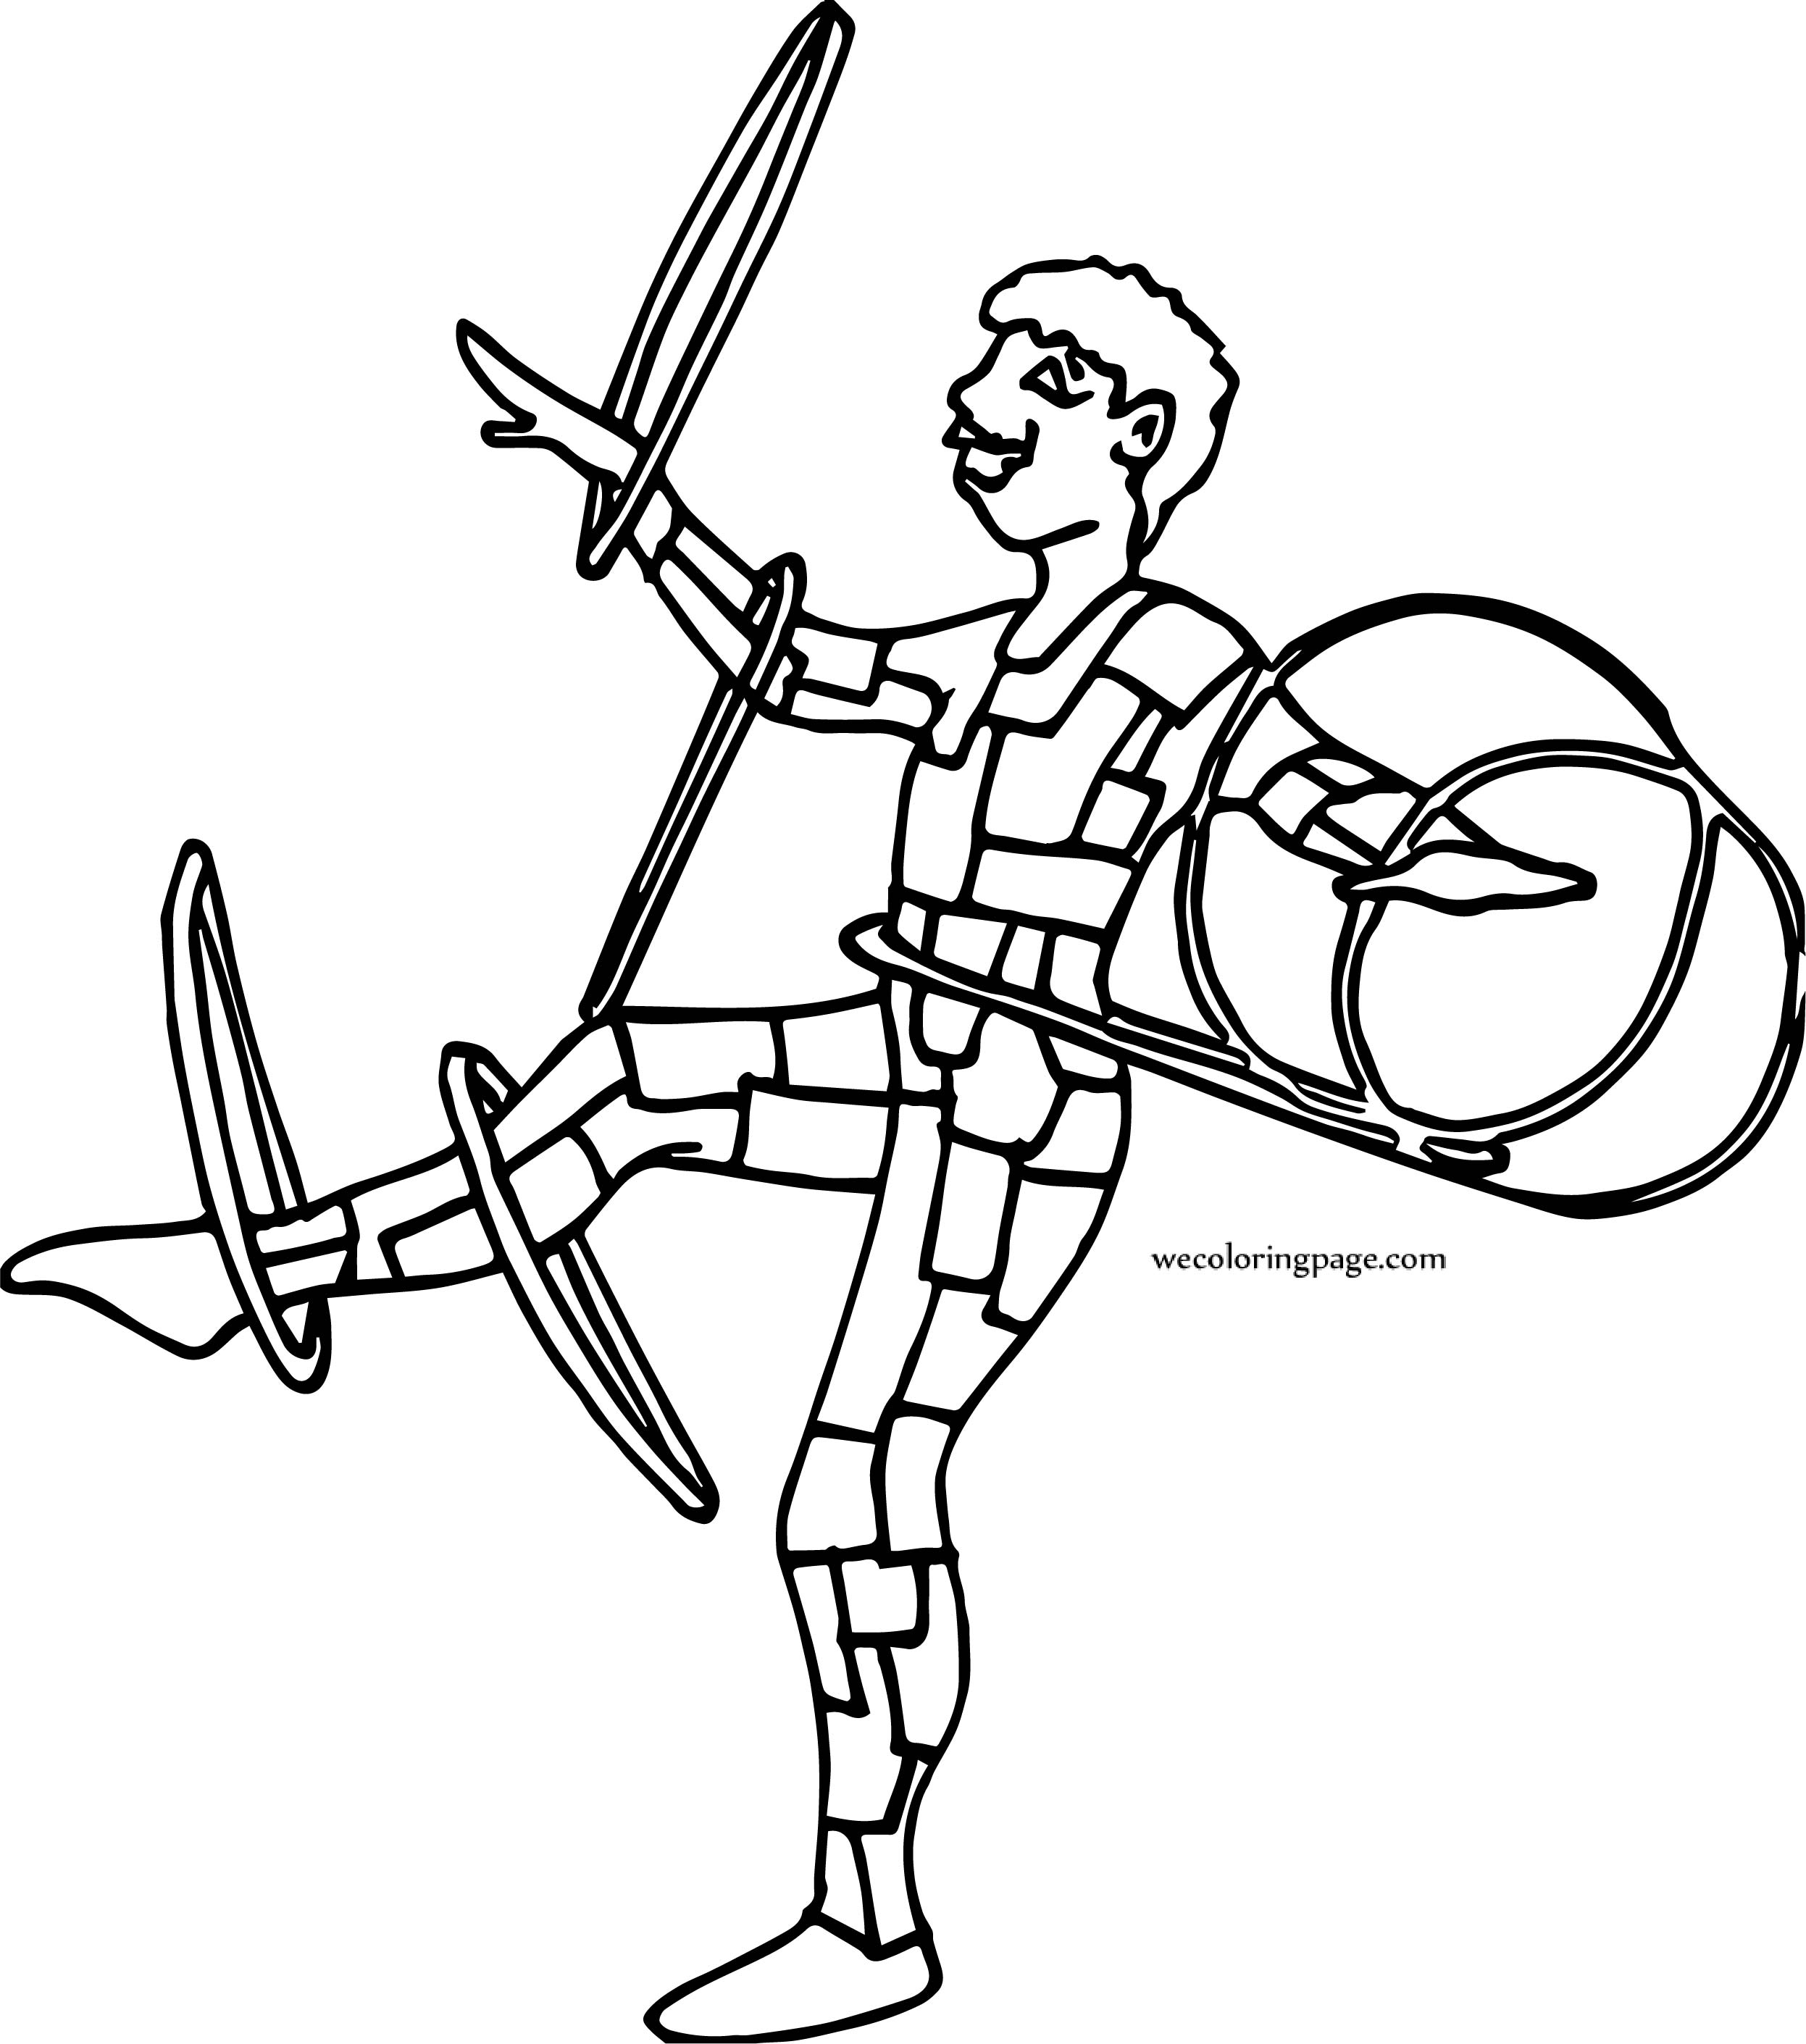 Colorful Nitro Circus Coloring Pages Composition - Coloring Paper ...